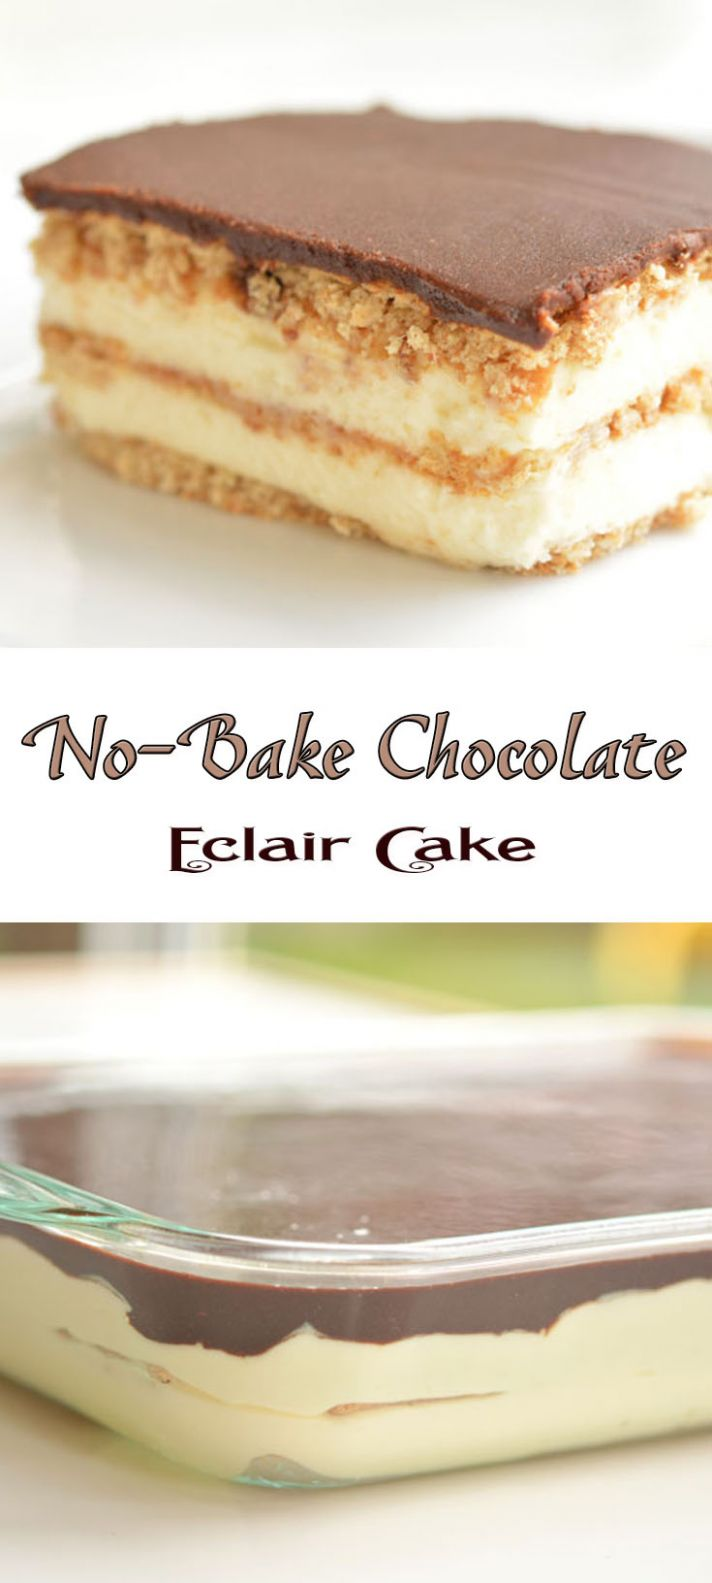 No-Bake Chocolate Eclair Cake - Recipe Chocolate Eclair Cake